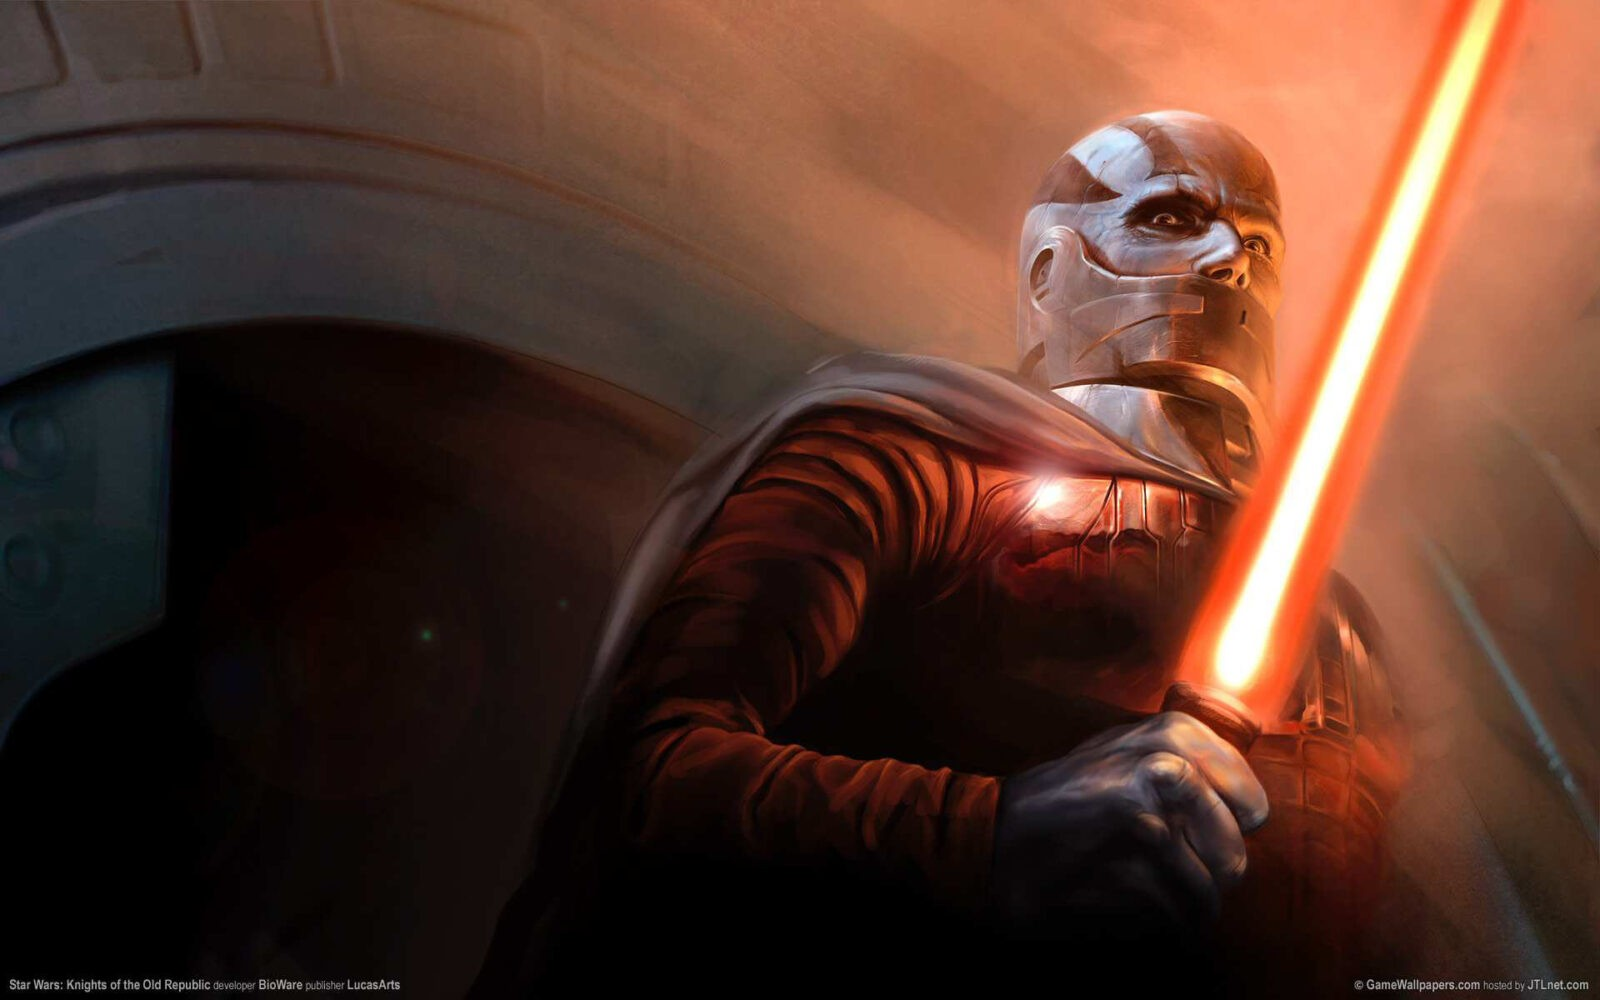 Star Wars the Old Republic HD wallpapers free Download - photo#16